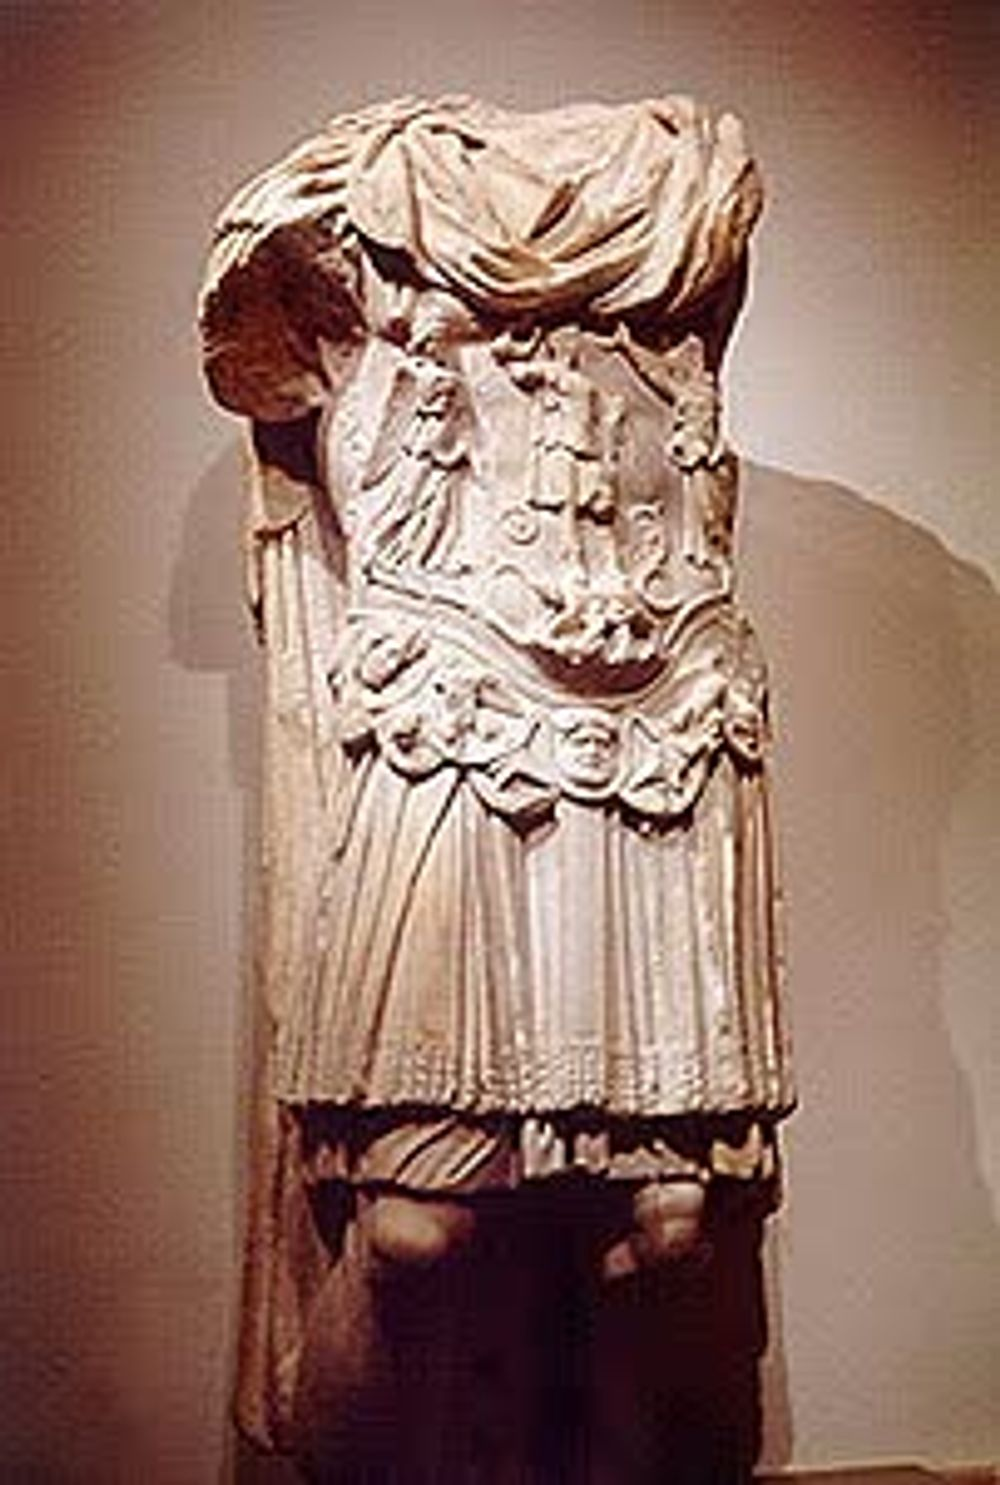 title: Old Broken Headless Roman Statue Monument at the Beirut National Museum